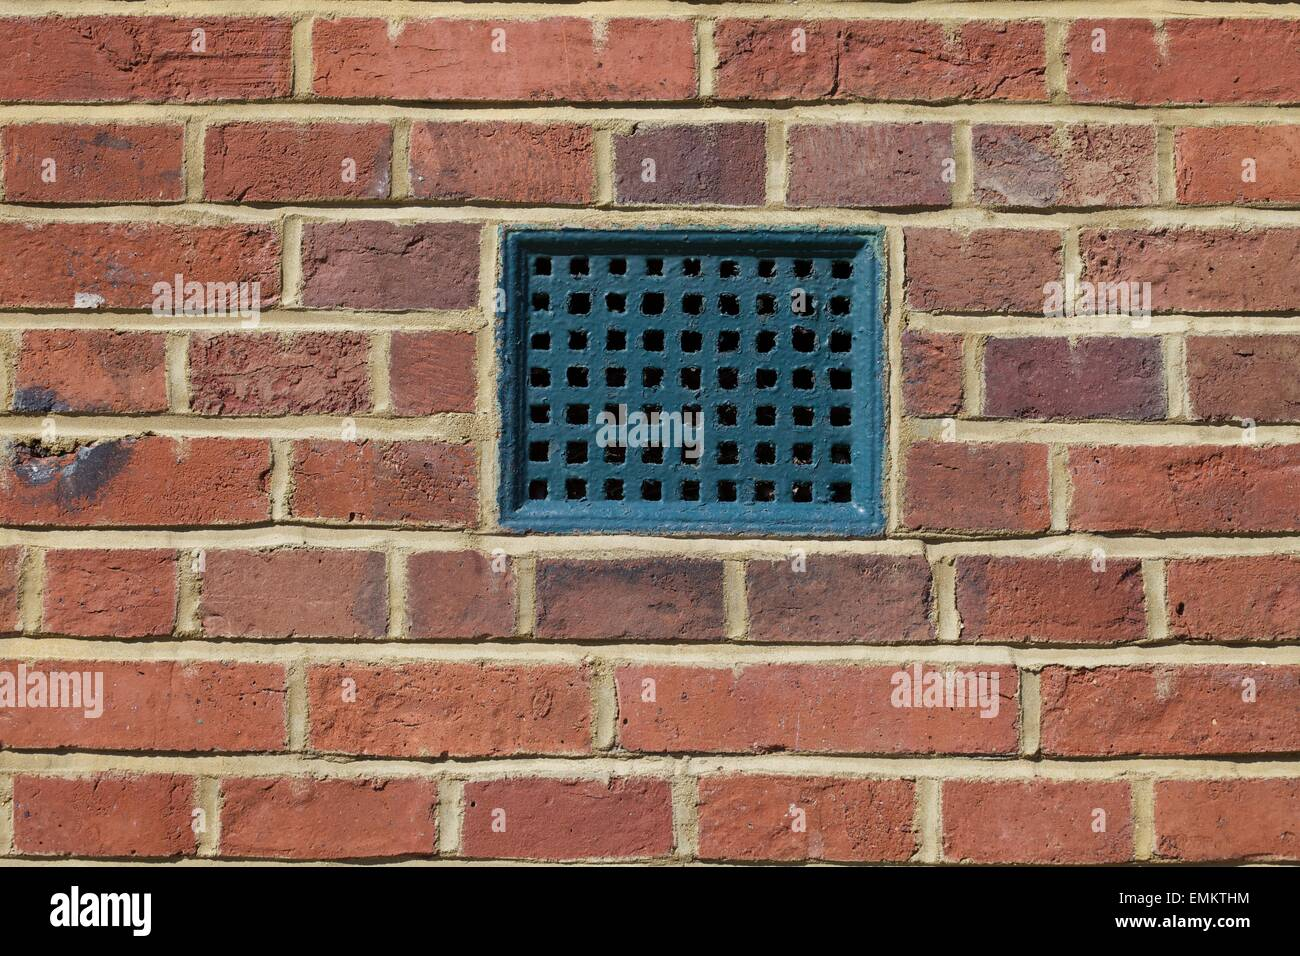 Close Up Shot Of Air Vent In Brick Wall Stock Photo